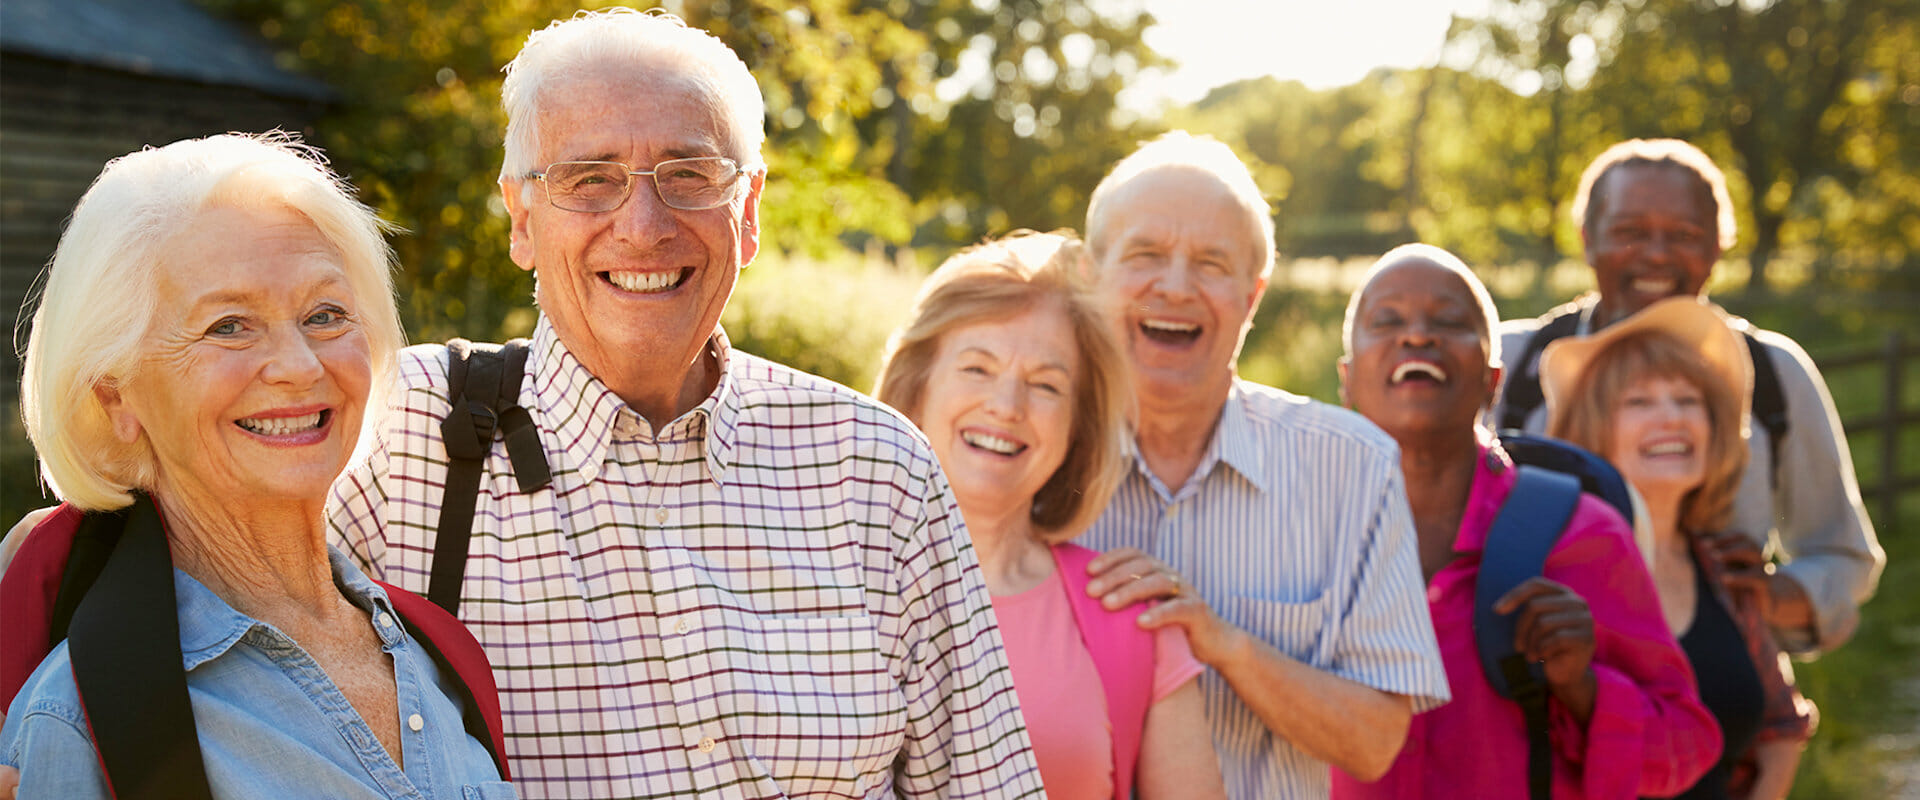 Smiling elderly people outside